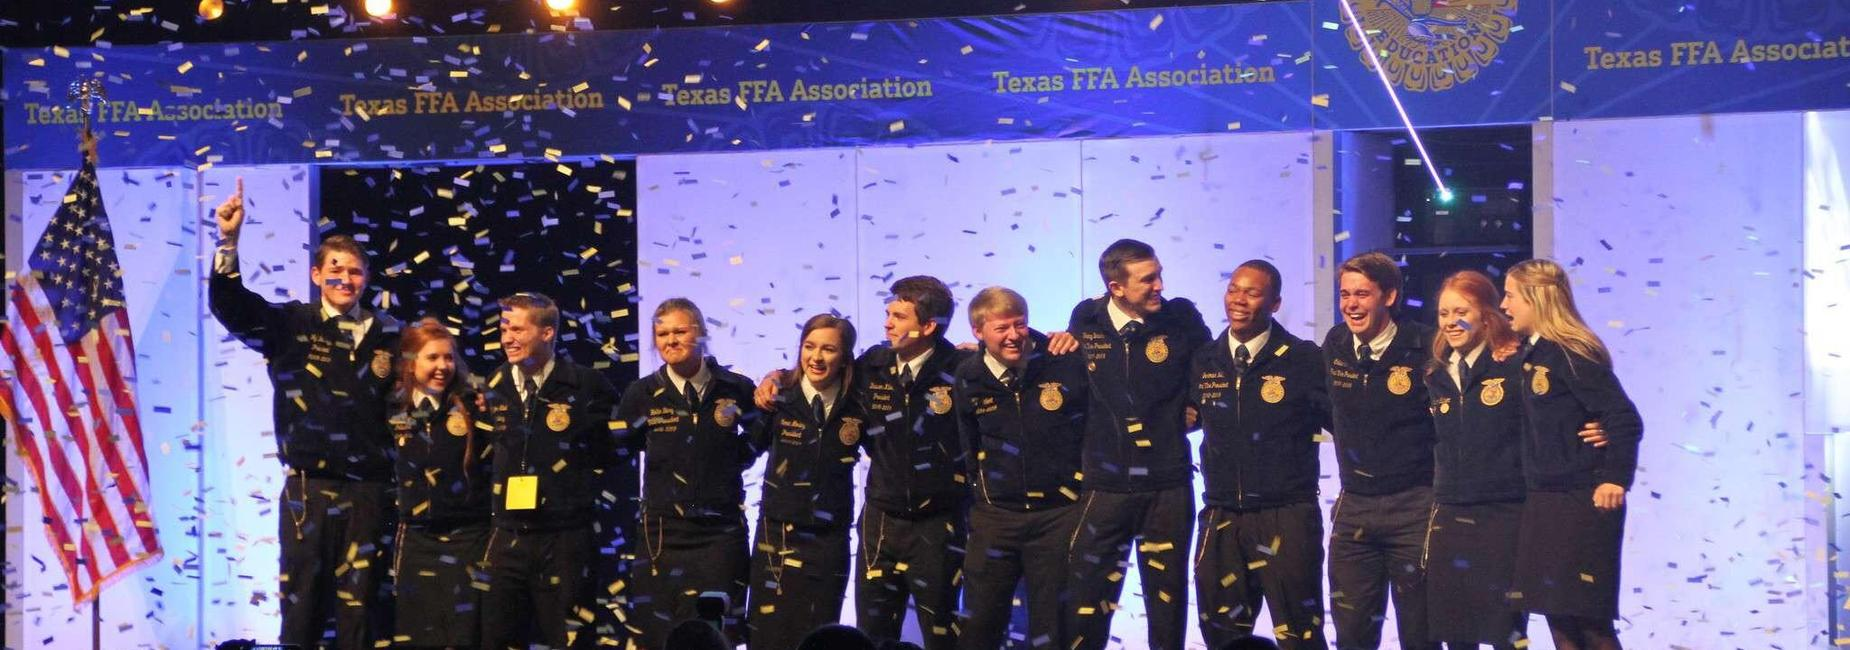 Stephenville High School FFA